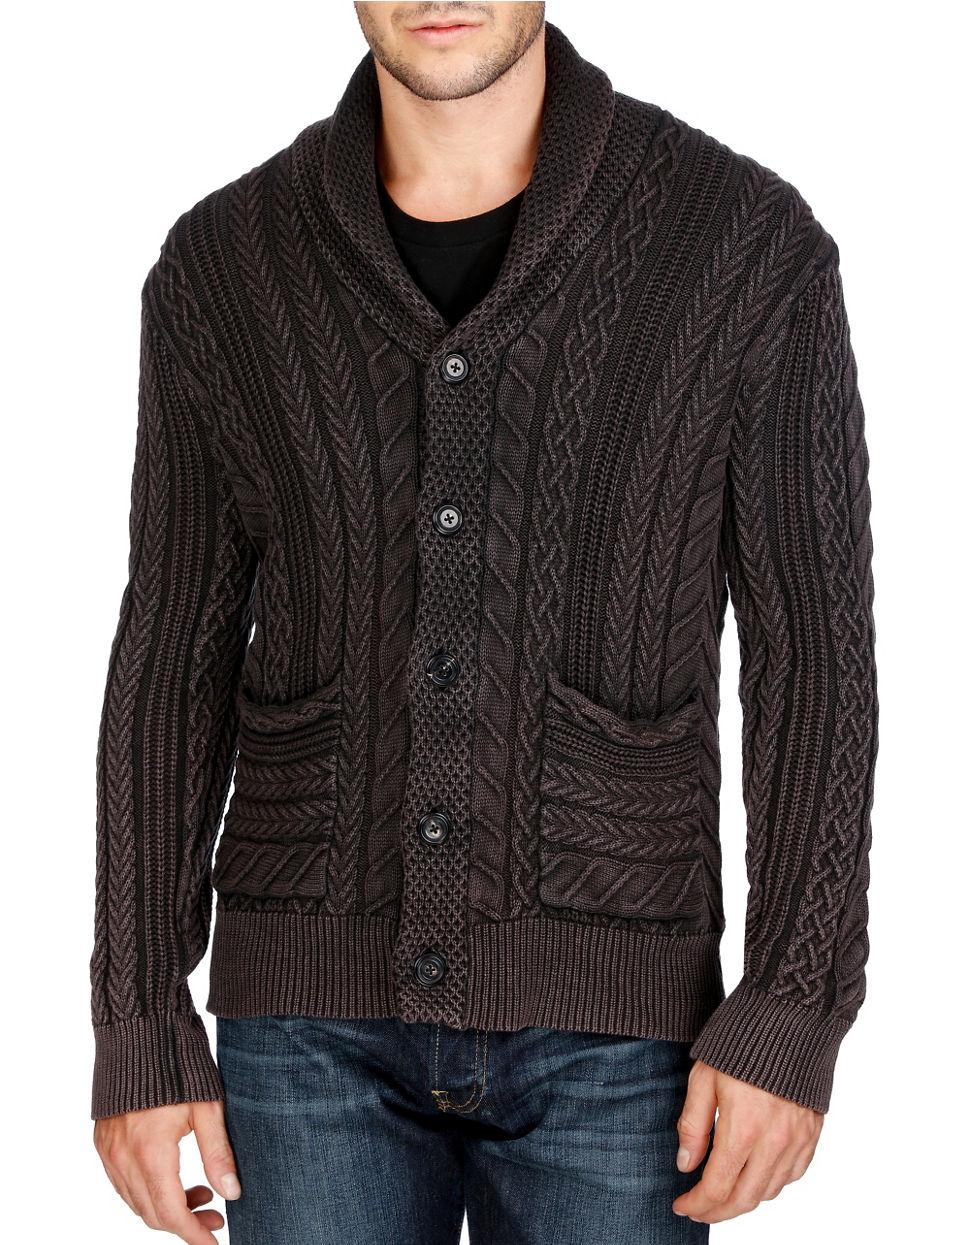 Women's Black Cable Knit Cardigan $ $ From Farfetch Price last checked 19 hours ago Product prices and availability are accurate as of the date/time indicated and are subject to ingmecanica.ml: $